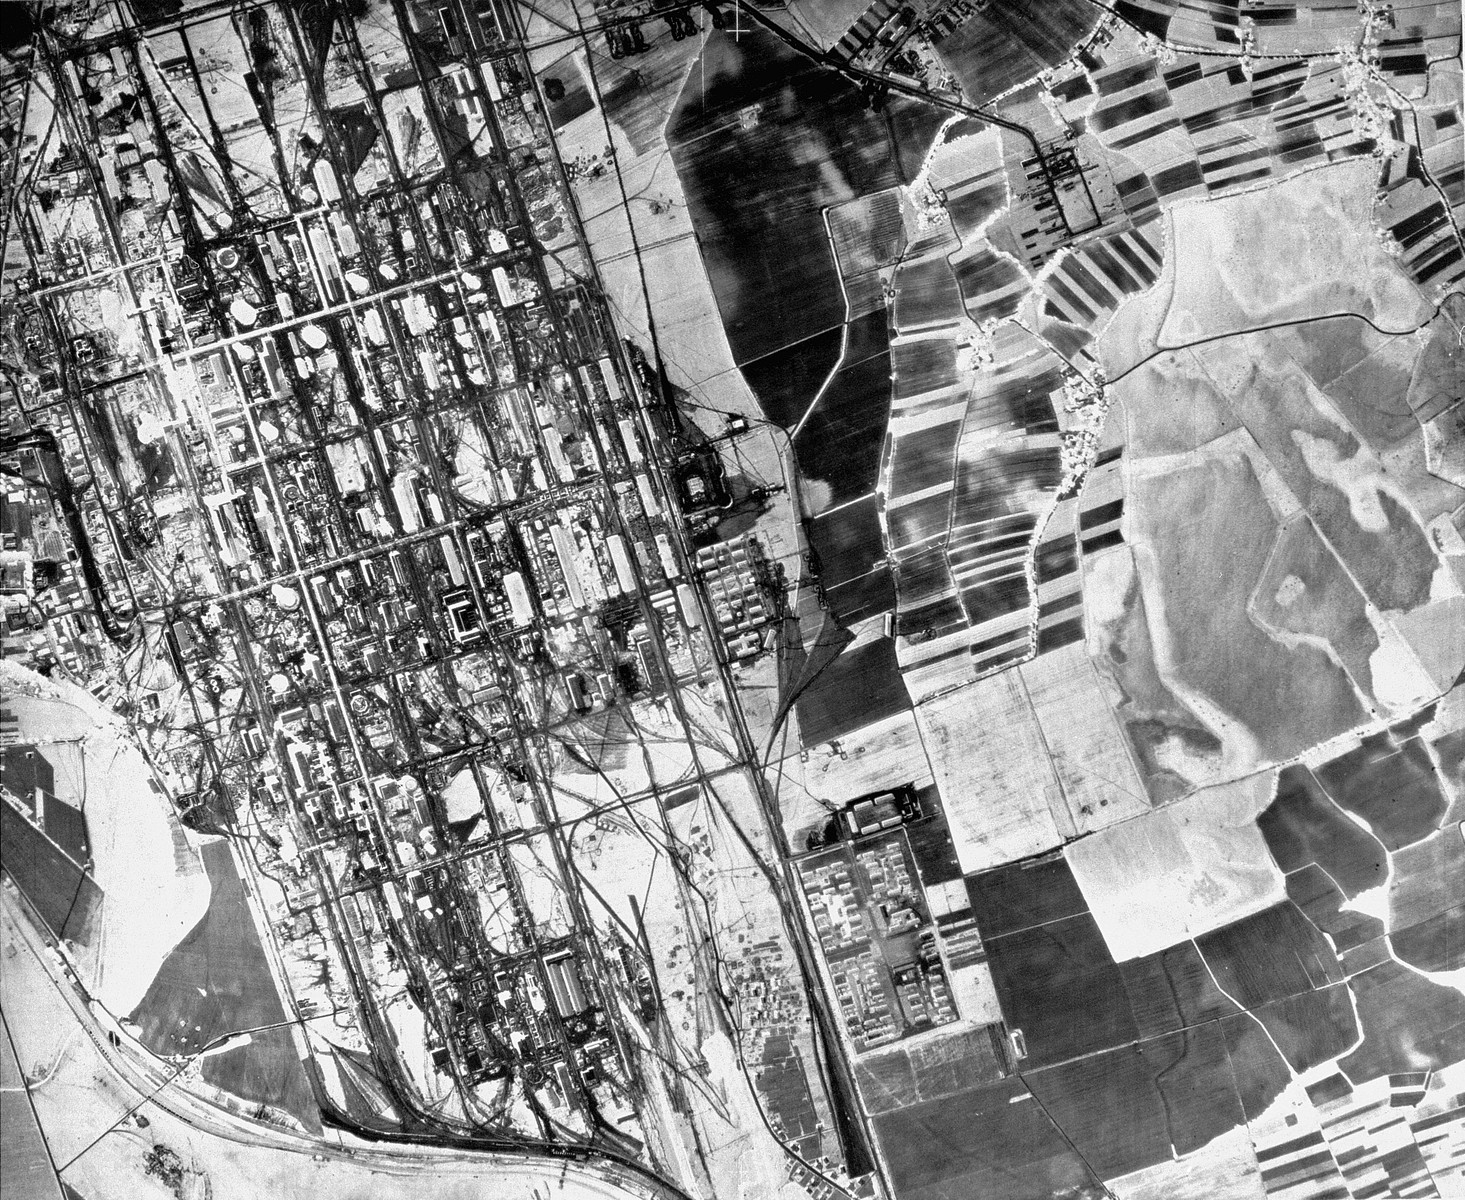 "Aerial photograph of the Auschwitz area showing a partial view of the I.G. Farben plant and the associated Monowitz (Auschwitz III) concentration camp.  Mission:  60 PRS/462 60 SQ;  Scale: 1/54,000;  Focal Length: 6"";  Altitude: 27,000'"